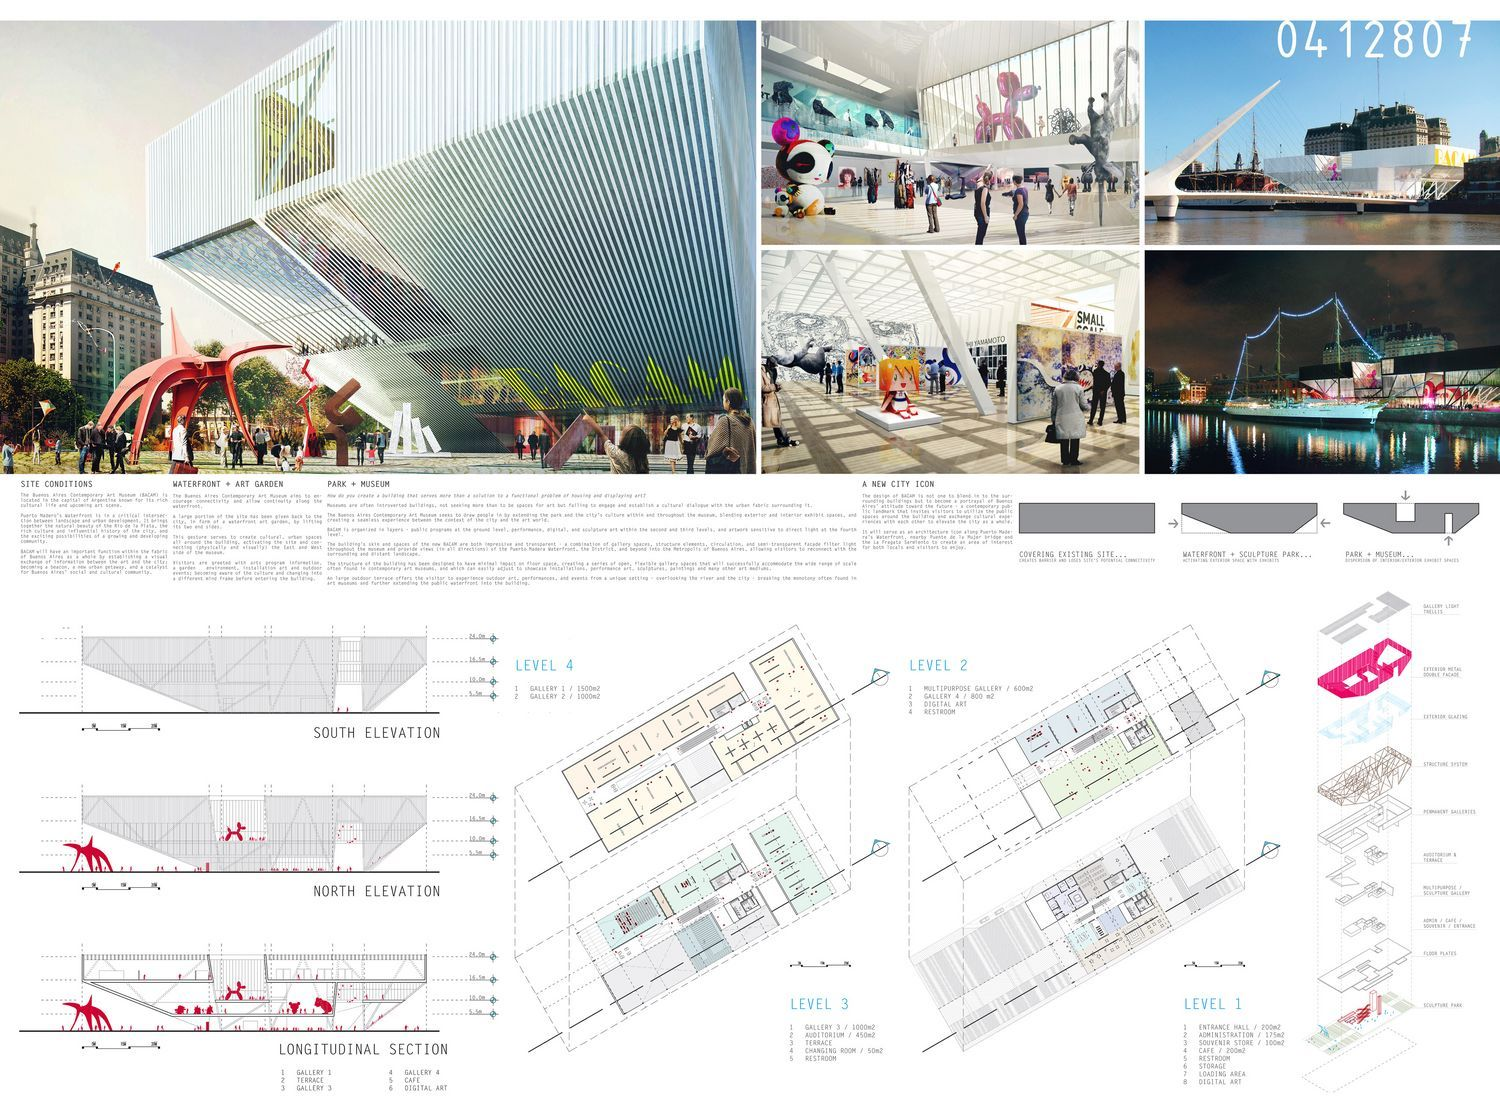 Buenos Aires New Contemporary Art Museum Competition